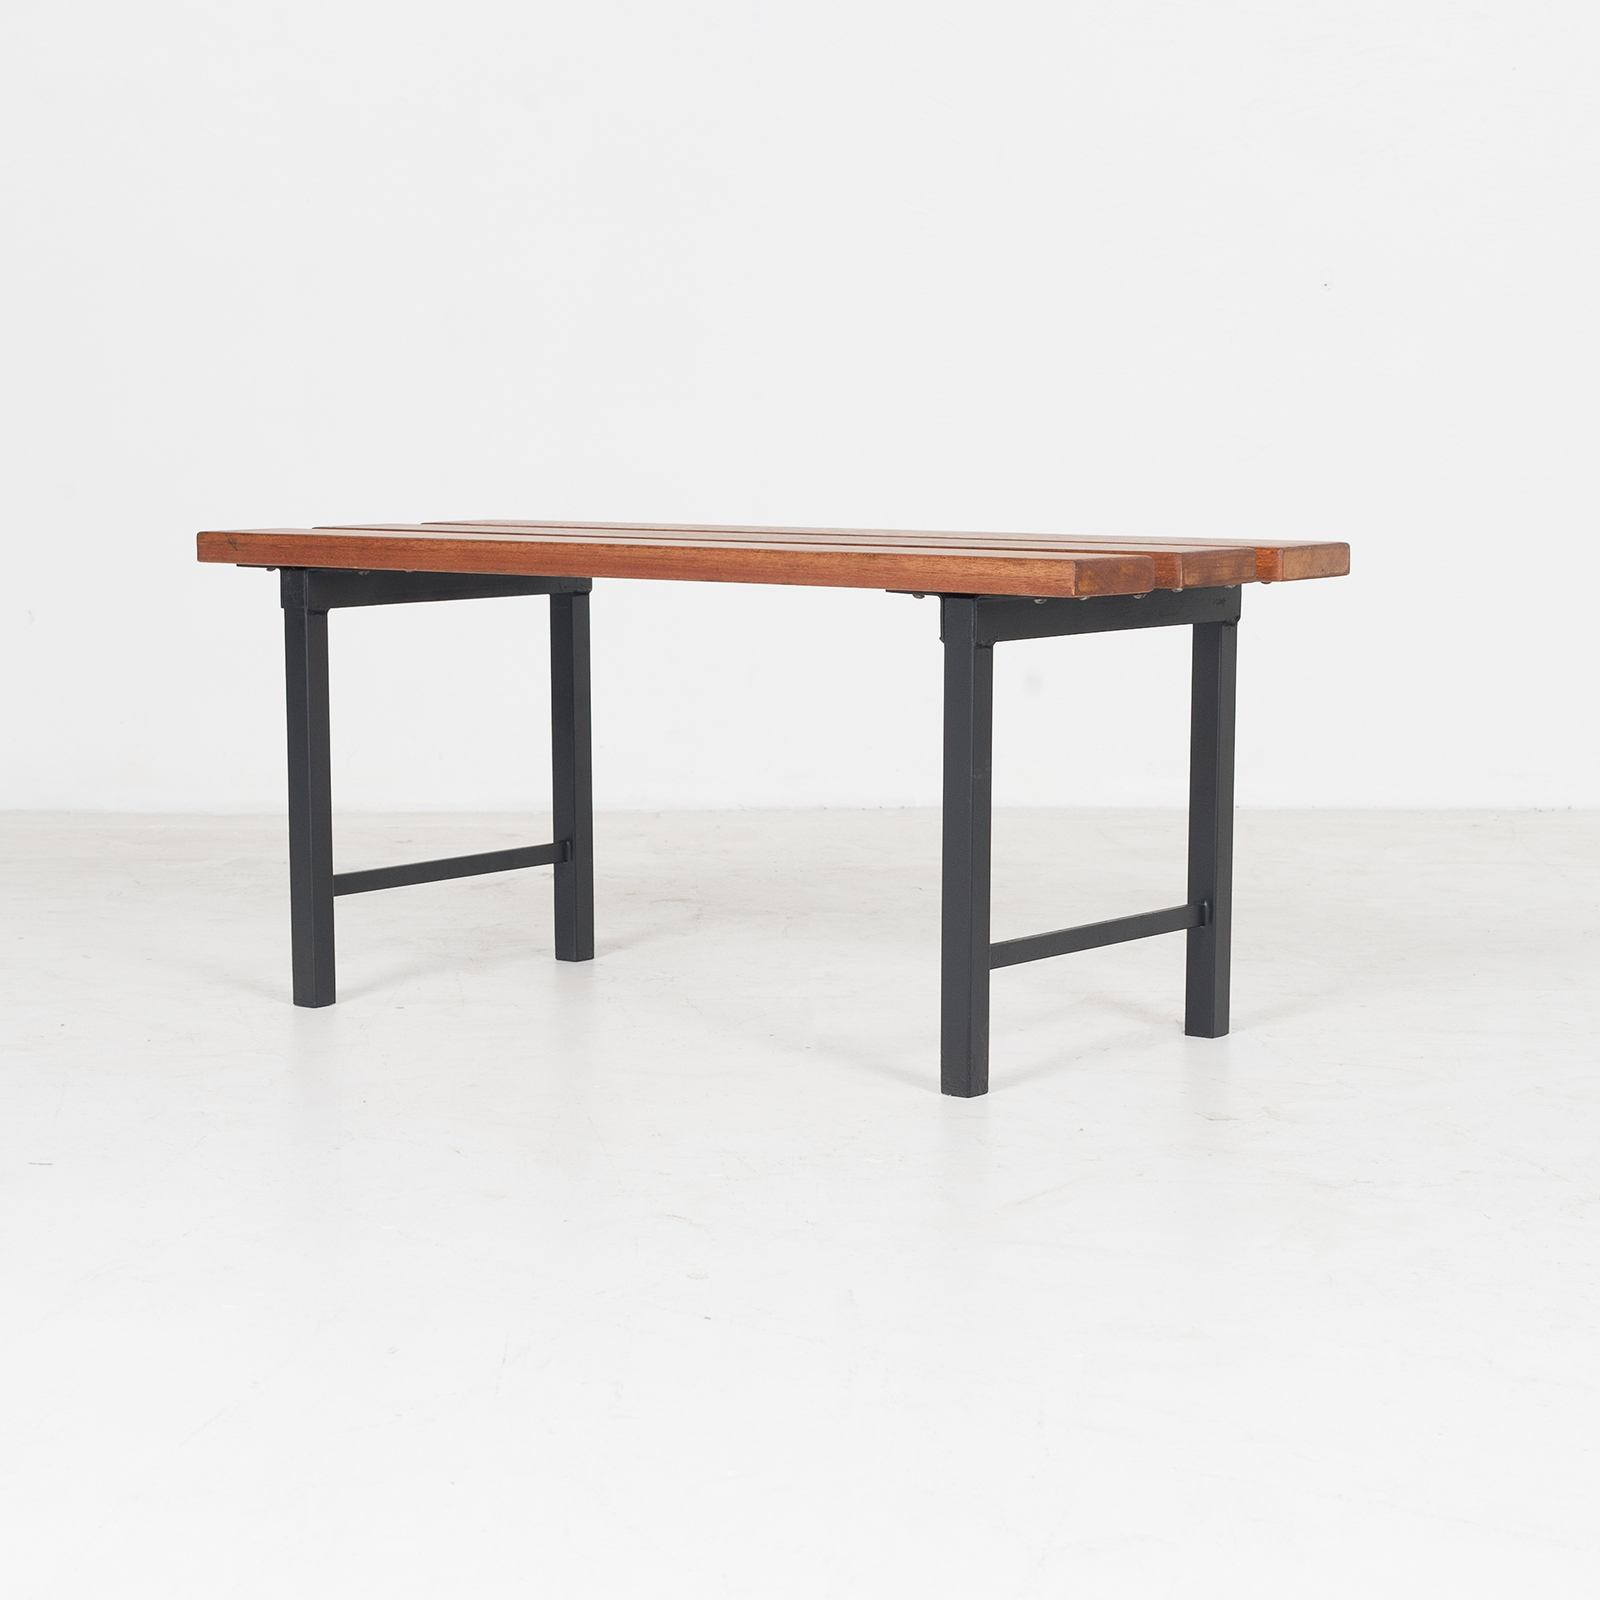 Two Seat Timber And Steel Bench, 1960s, The Netherlands50